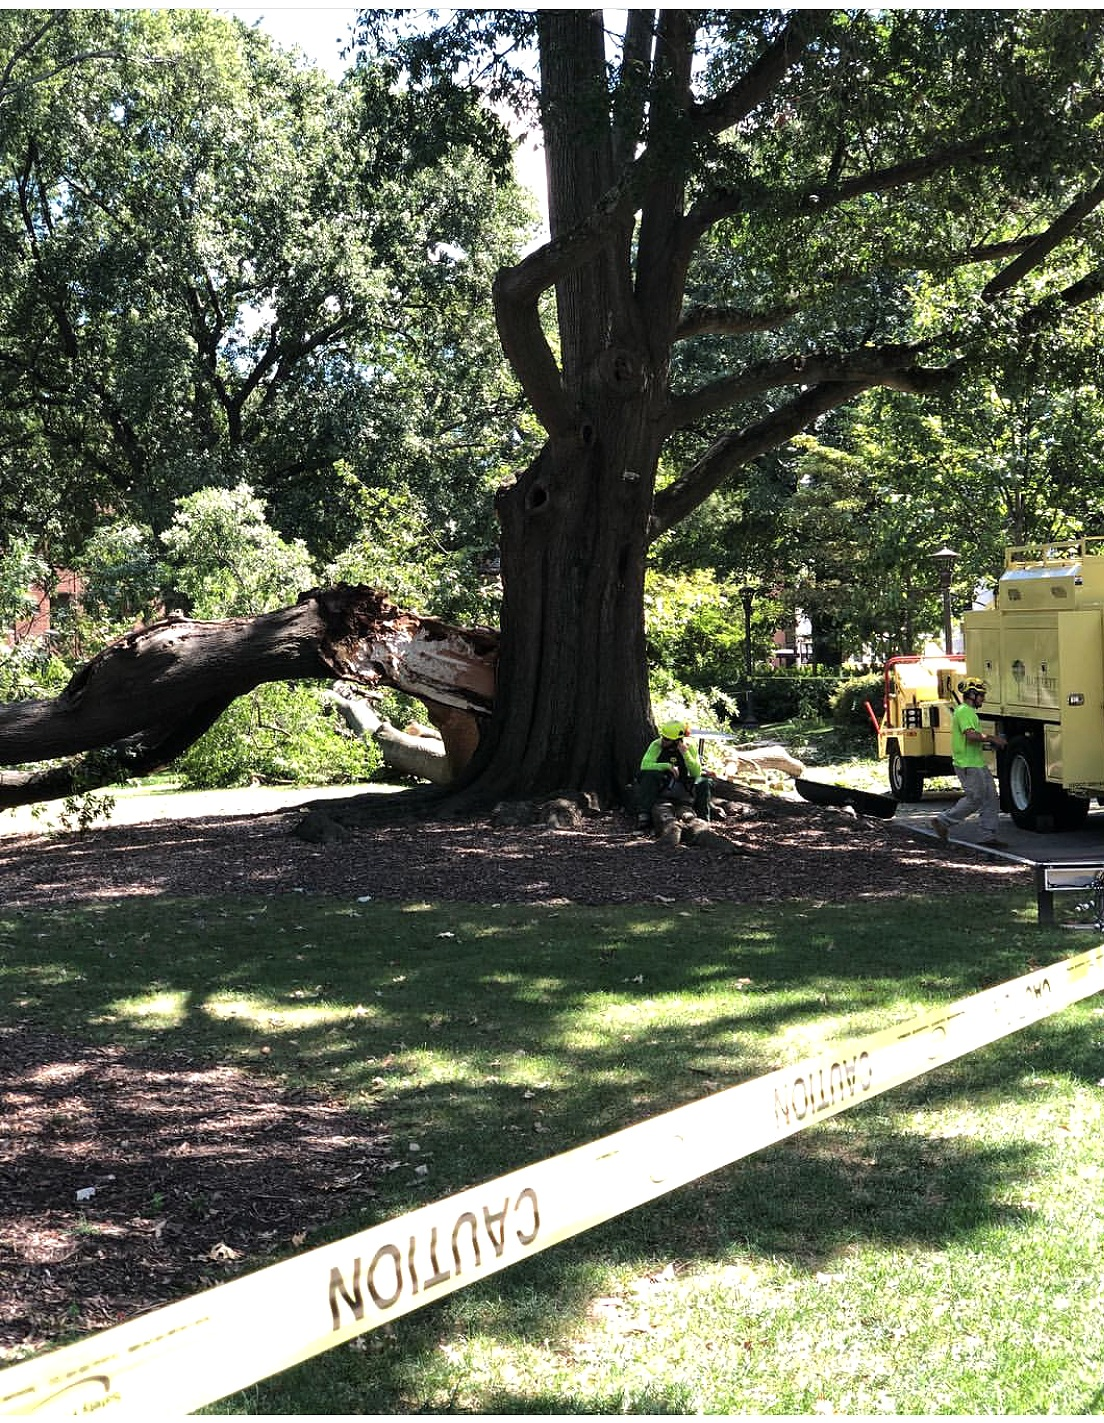 Eutree worked with local expert arborist at Boutte Tree to safely remove and salvage the timber from the tree.